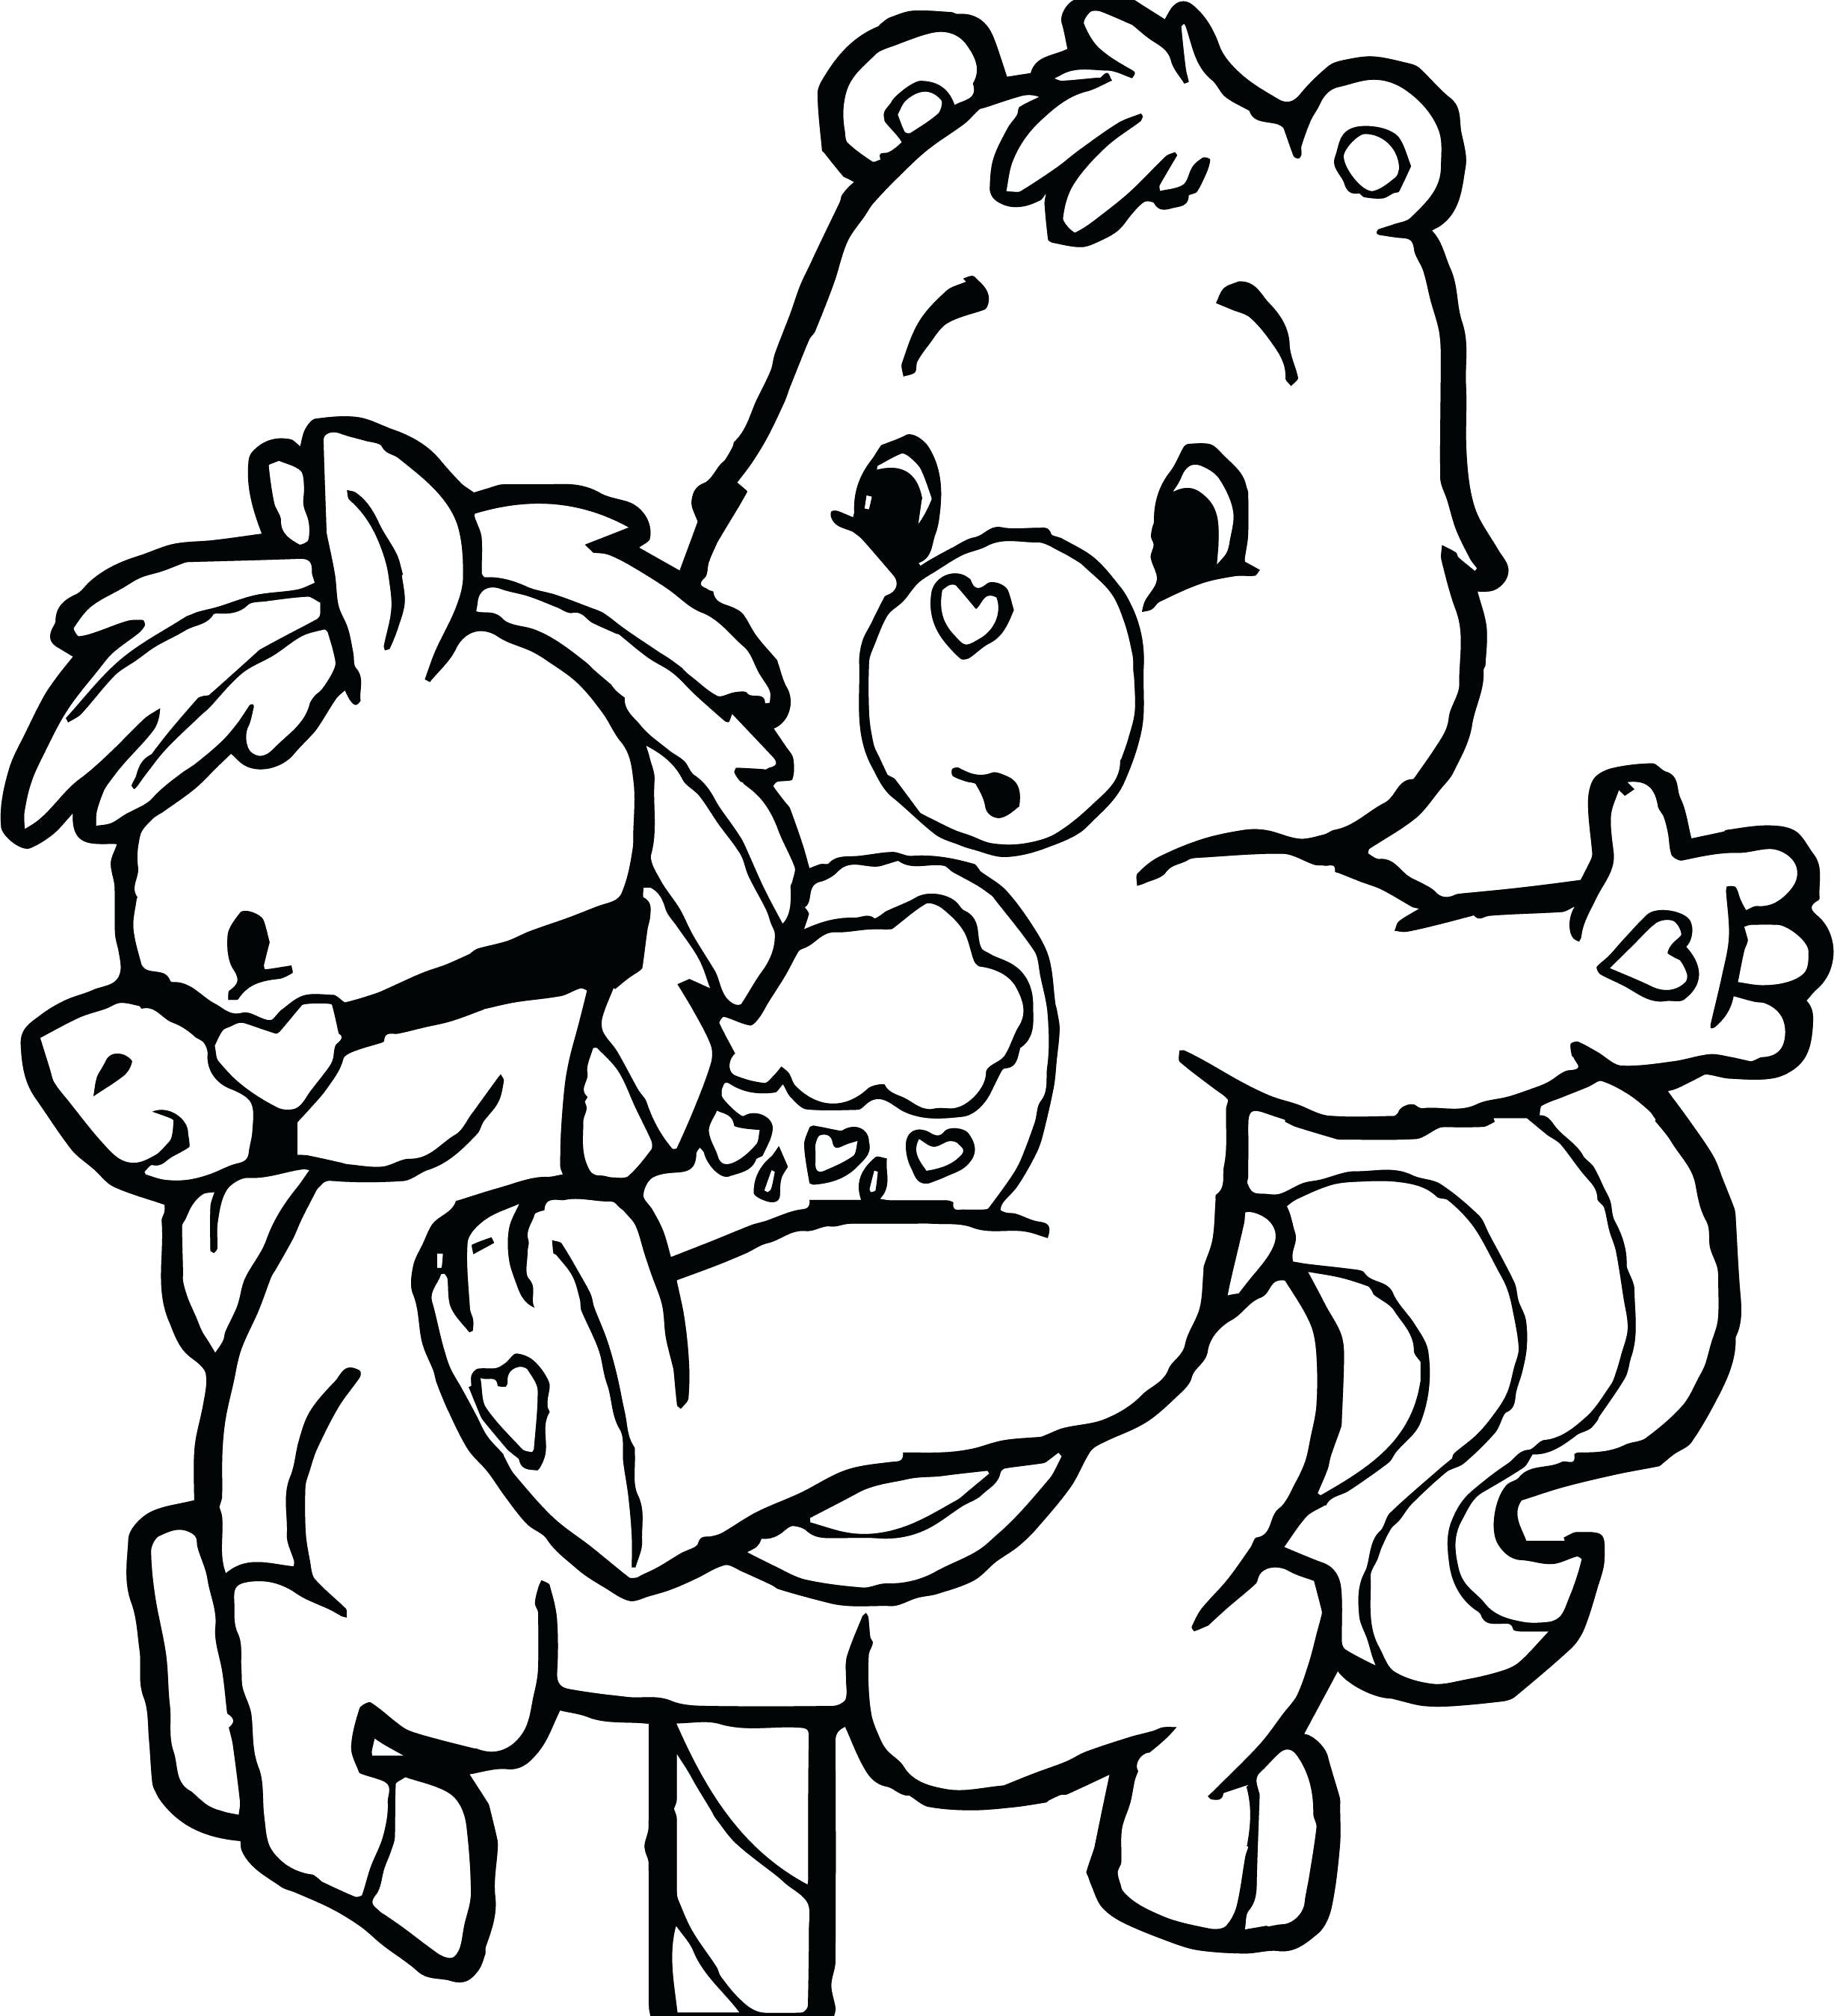 Blackhawks Coloring Pages At Getcolorings